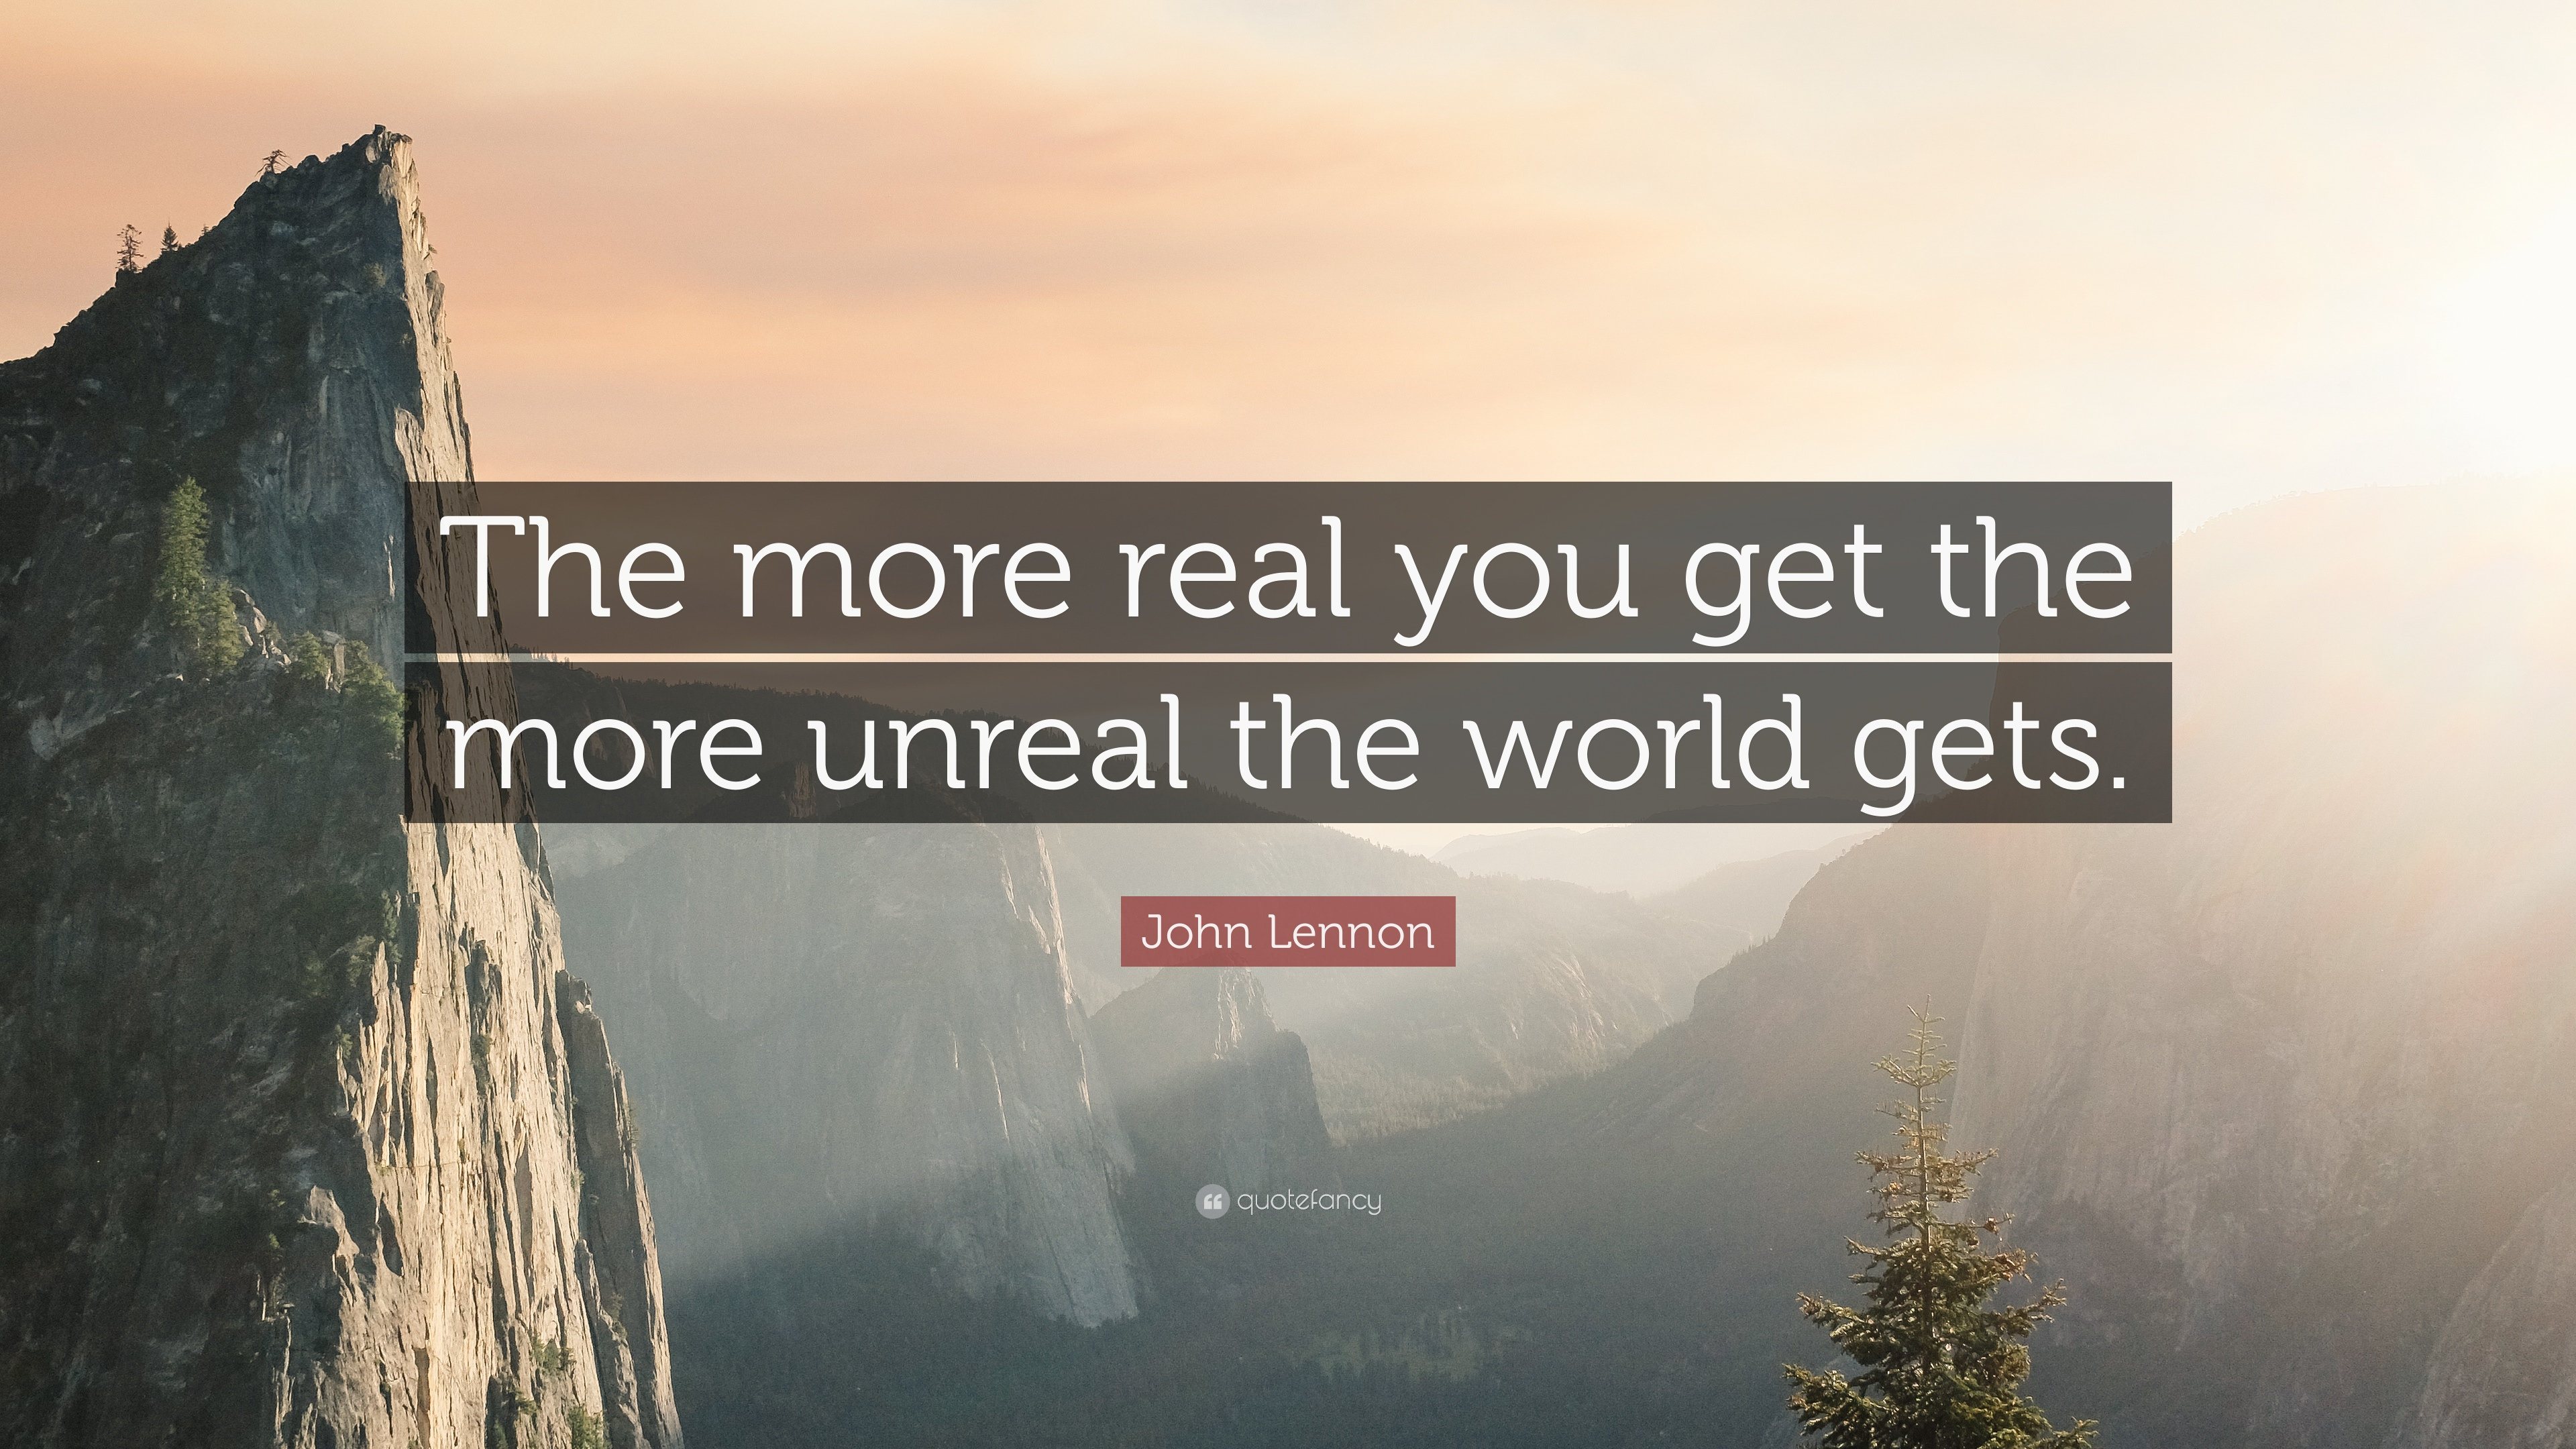 John Lennon Quote The More Real You Get The More Unreal The World